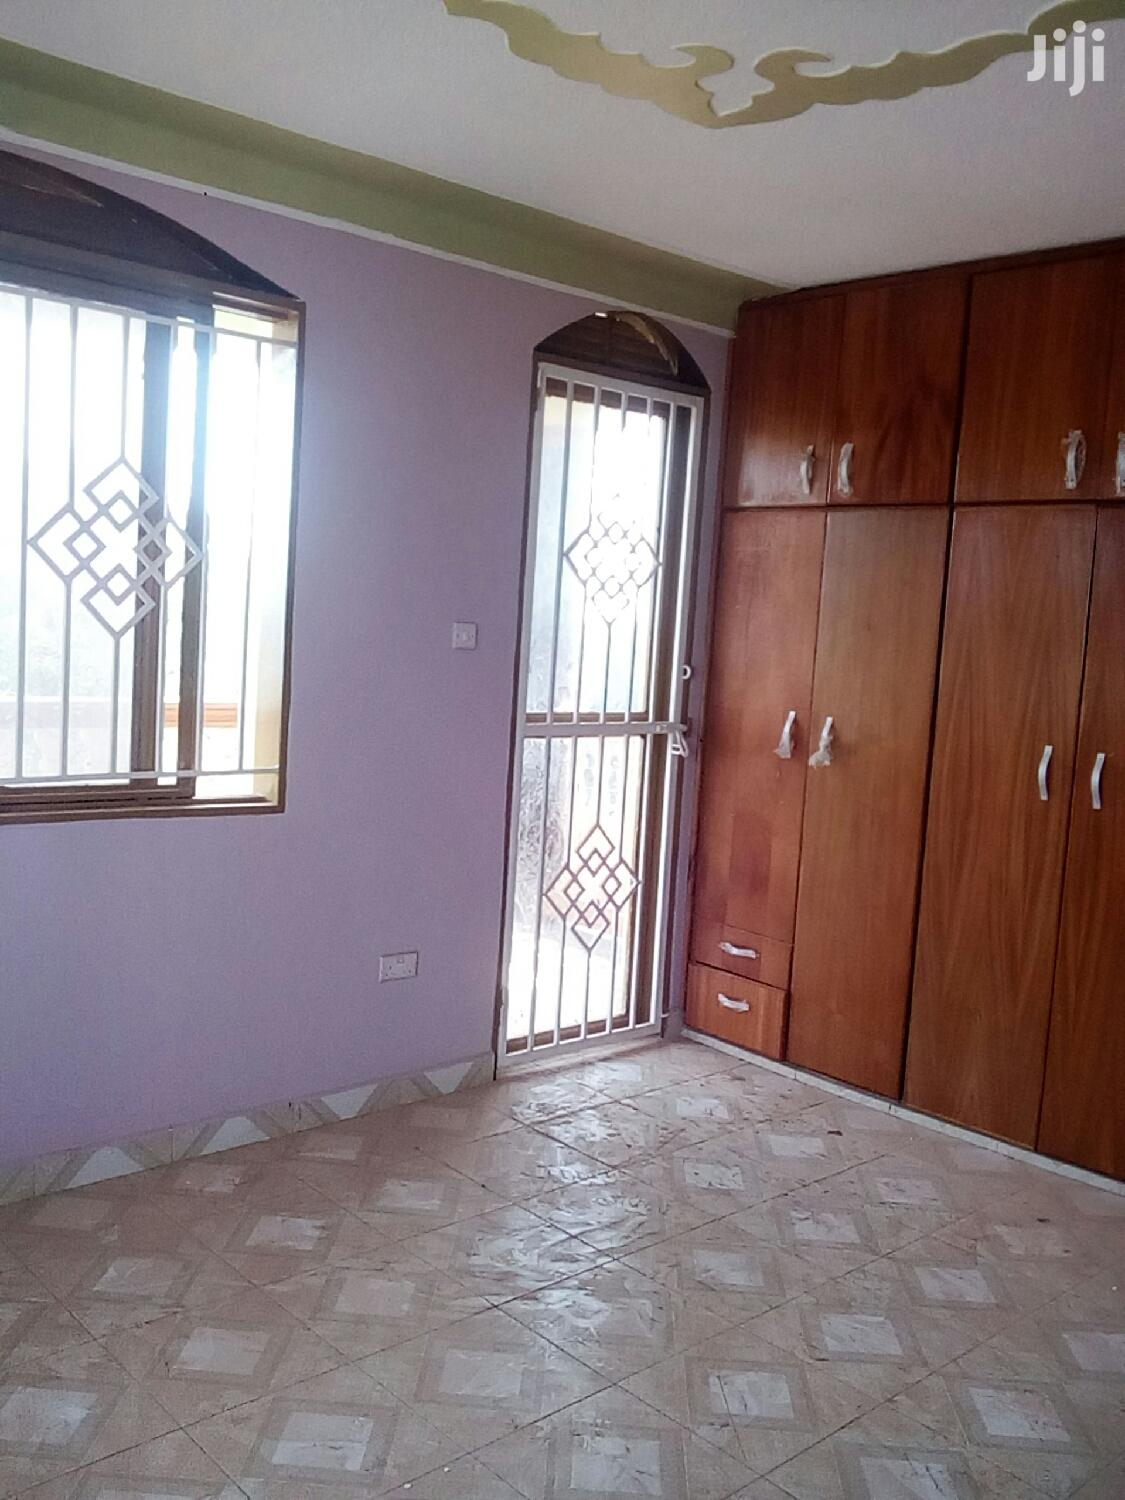 Ntinda Three Bedrooms for Rent   Houses & Apartments For Rent for sale in Kampala, Central Region, Uganda